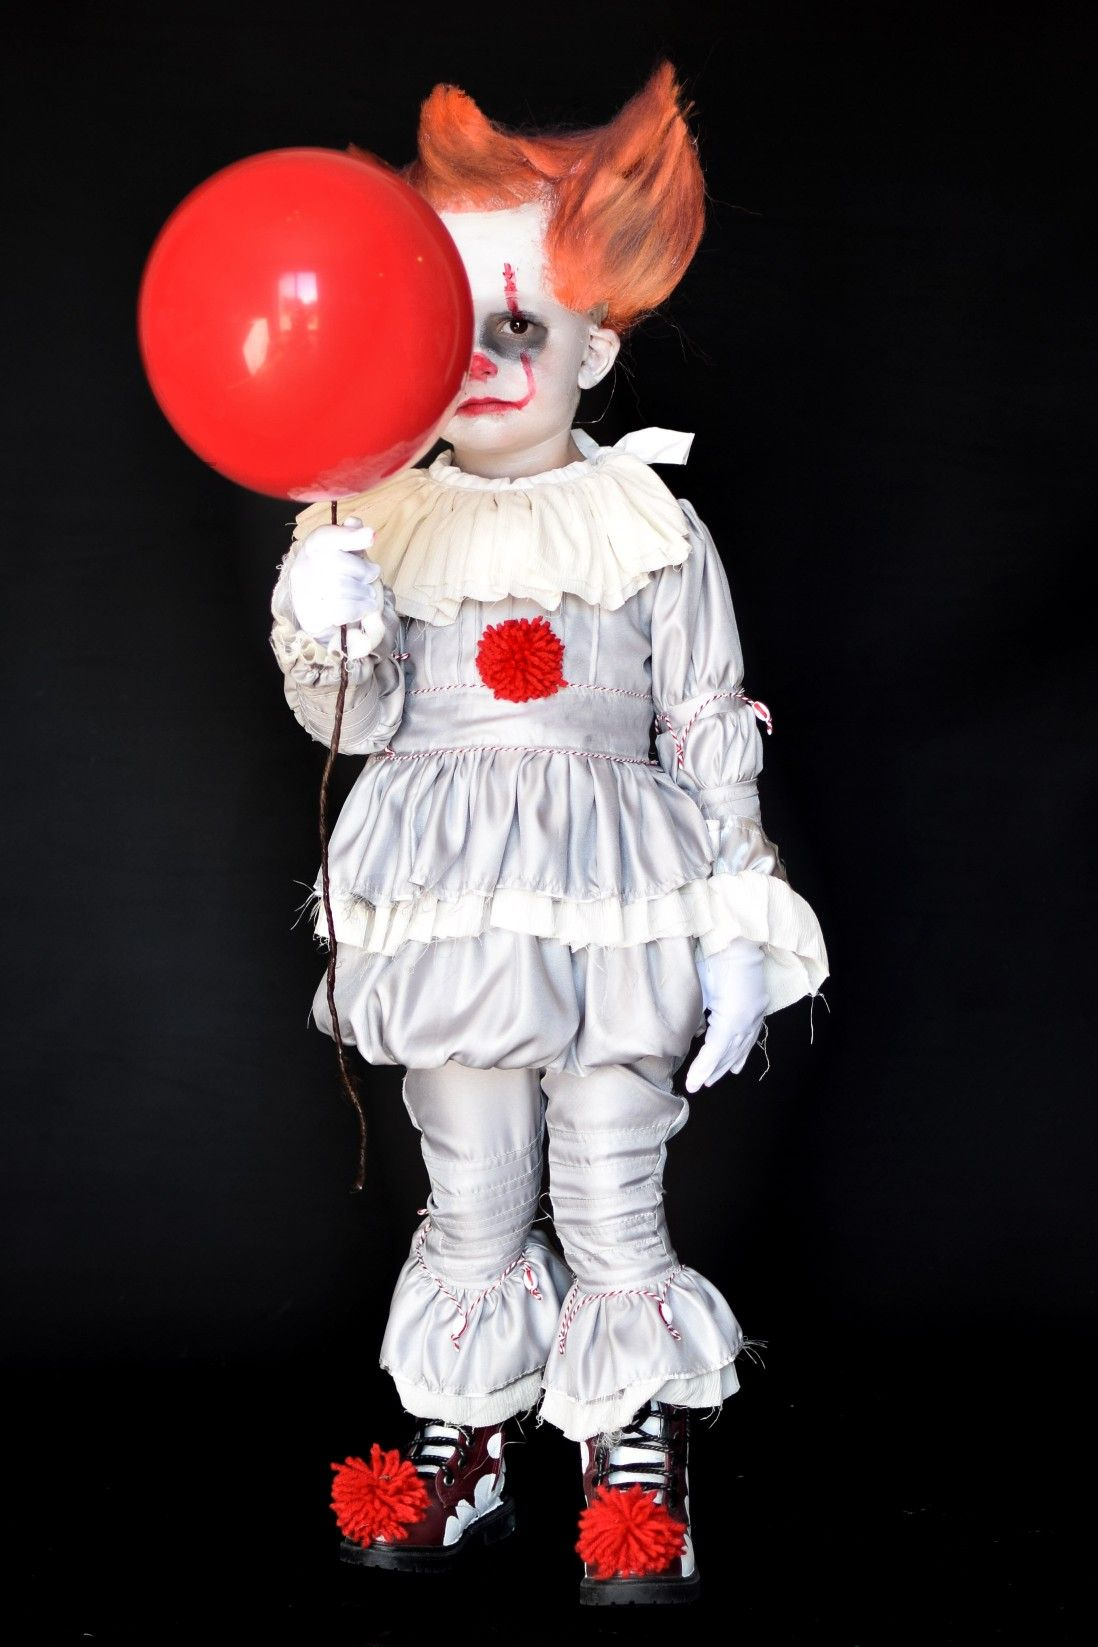 3 Year Old Turns Into Pennywise Clown From The Movie It